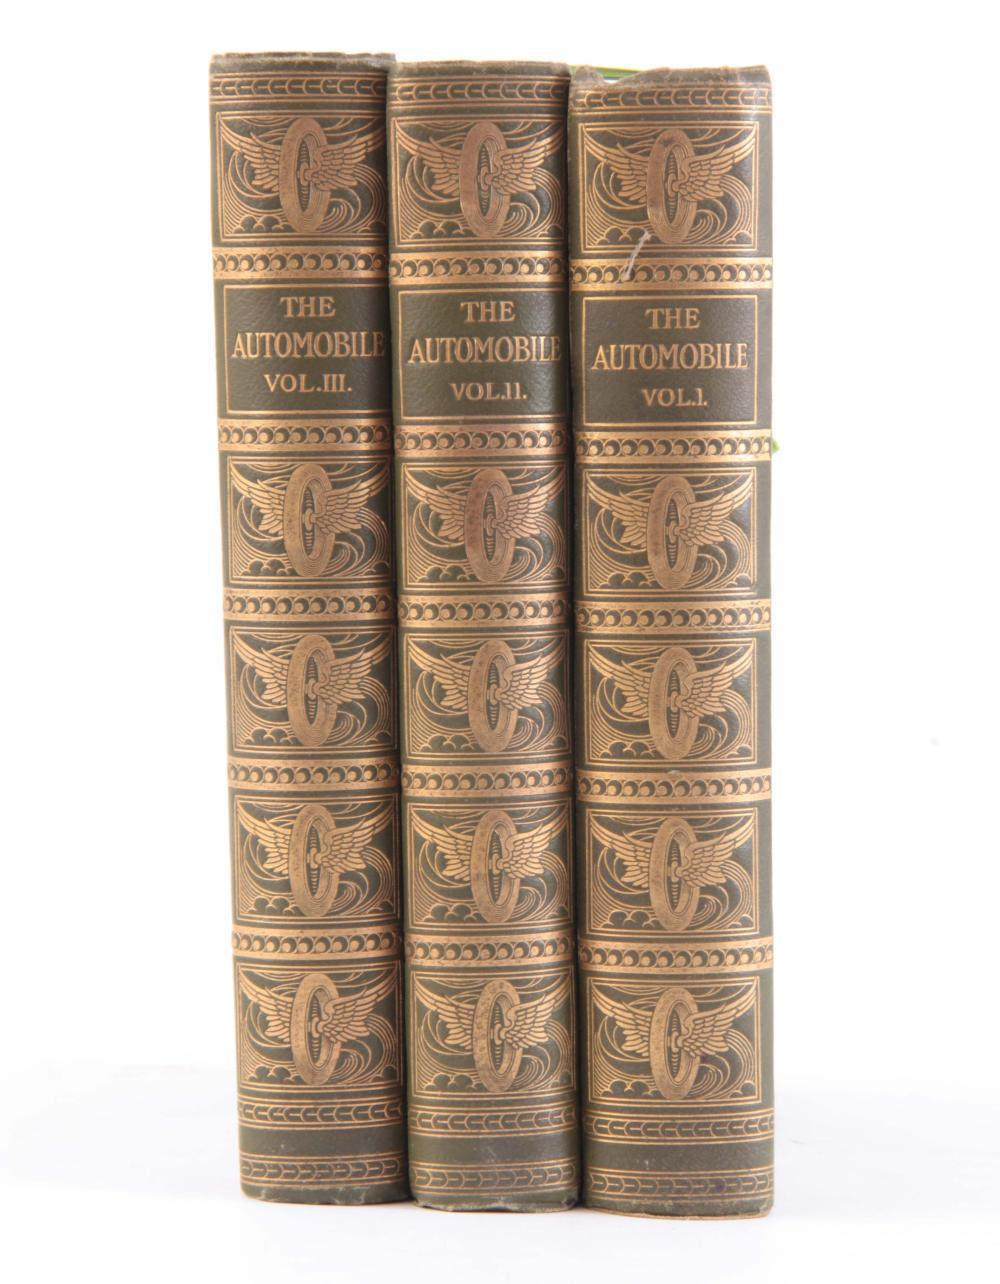 3 VOLUMES OF THE AUTOMOBILE includes volume 1 to 3